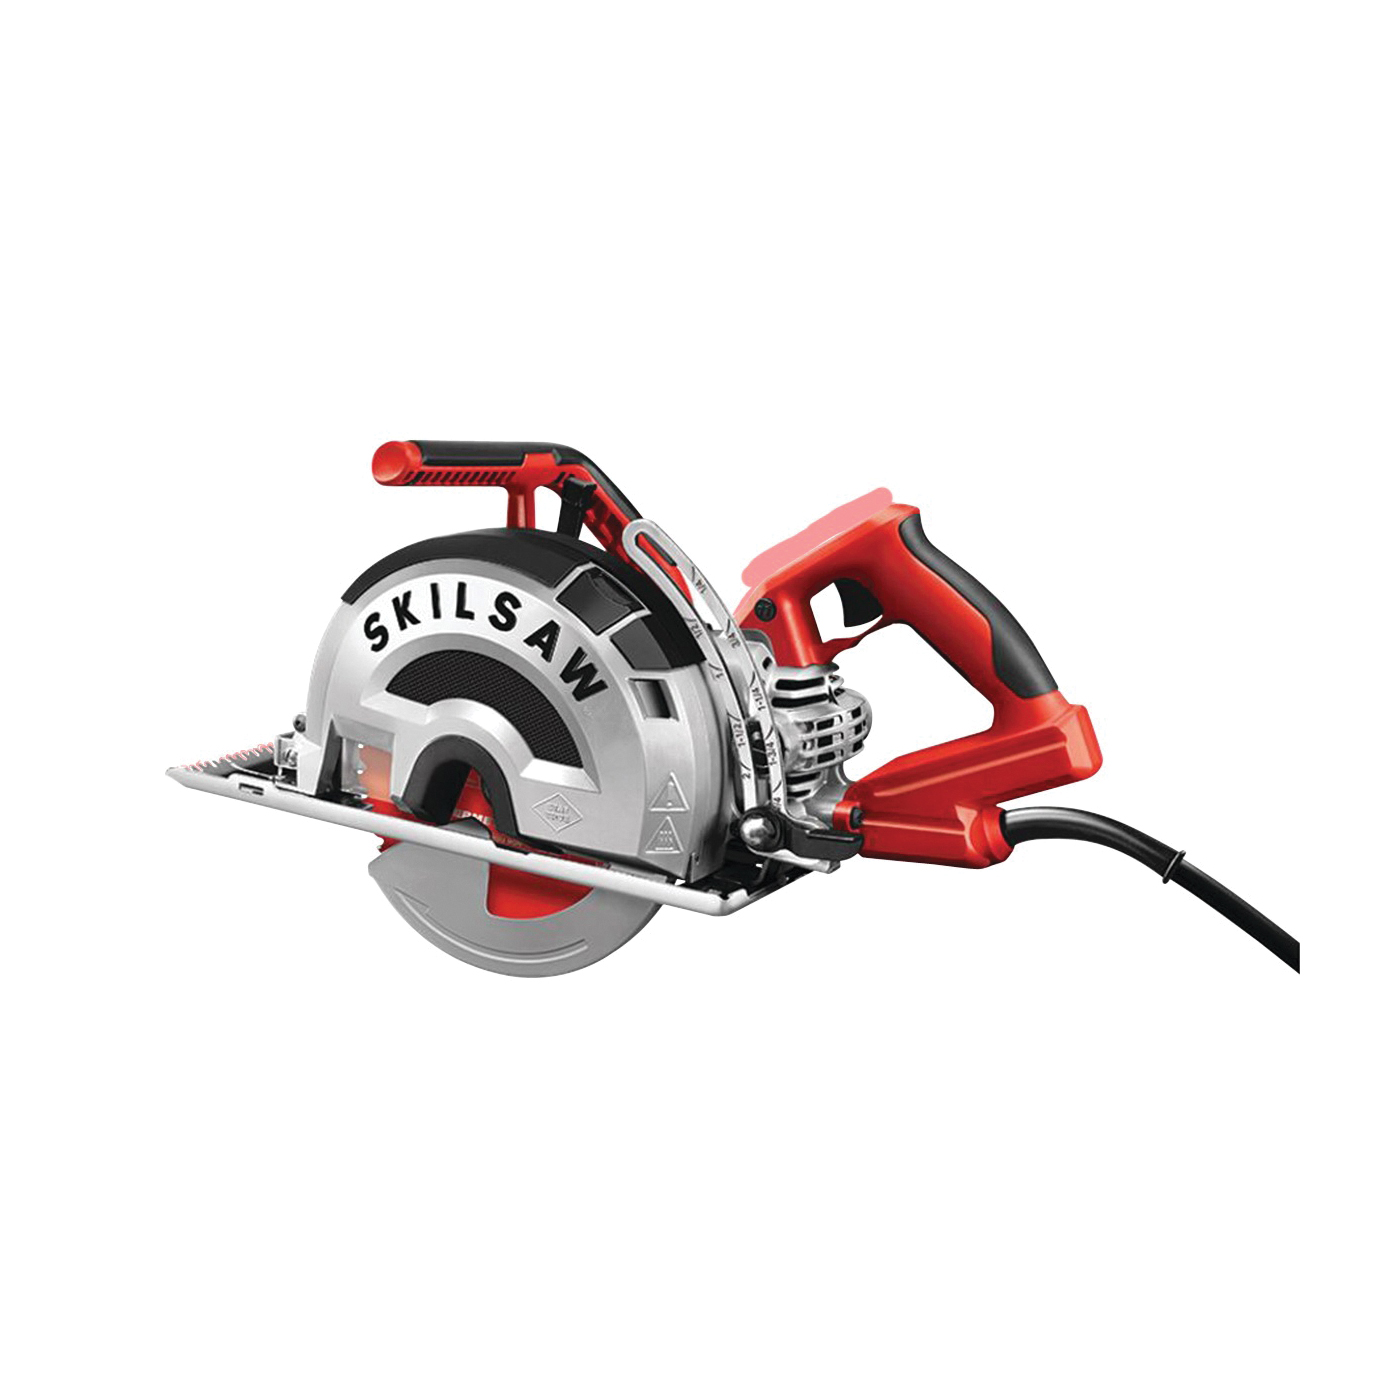 Picture of SKIL OUTLAW SPT78MMC-22 Circular Saw, 120 V, 15 A, 8 in Dia Blade, 5/8 in Arbor, 2-3/4 in D Cutting, 0 deg Bevel